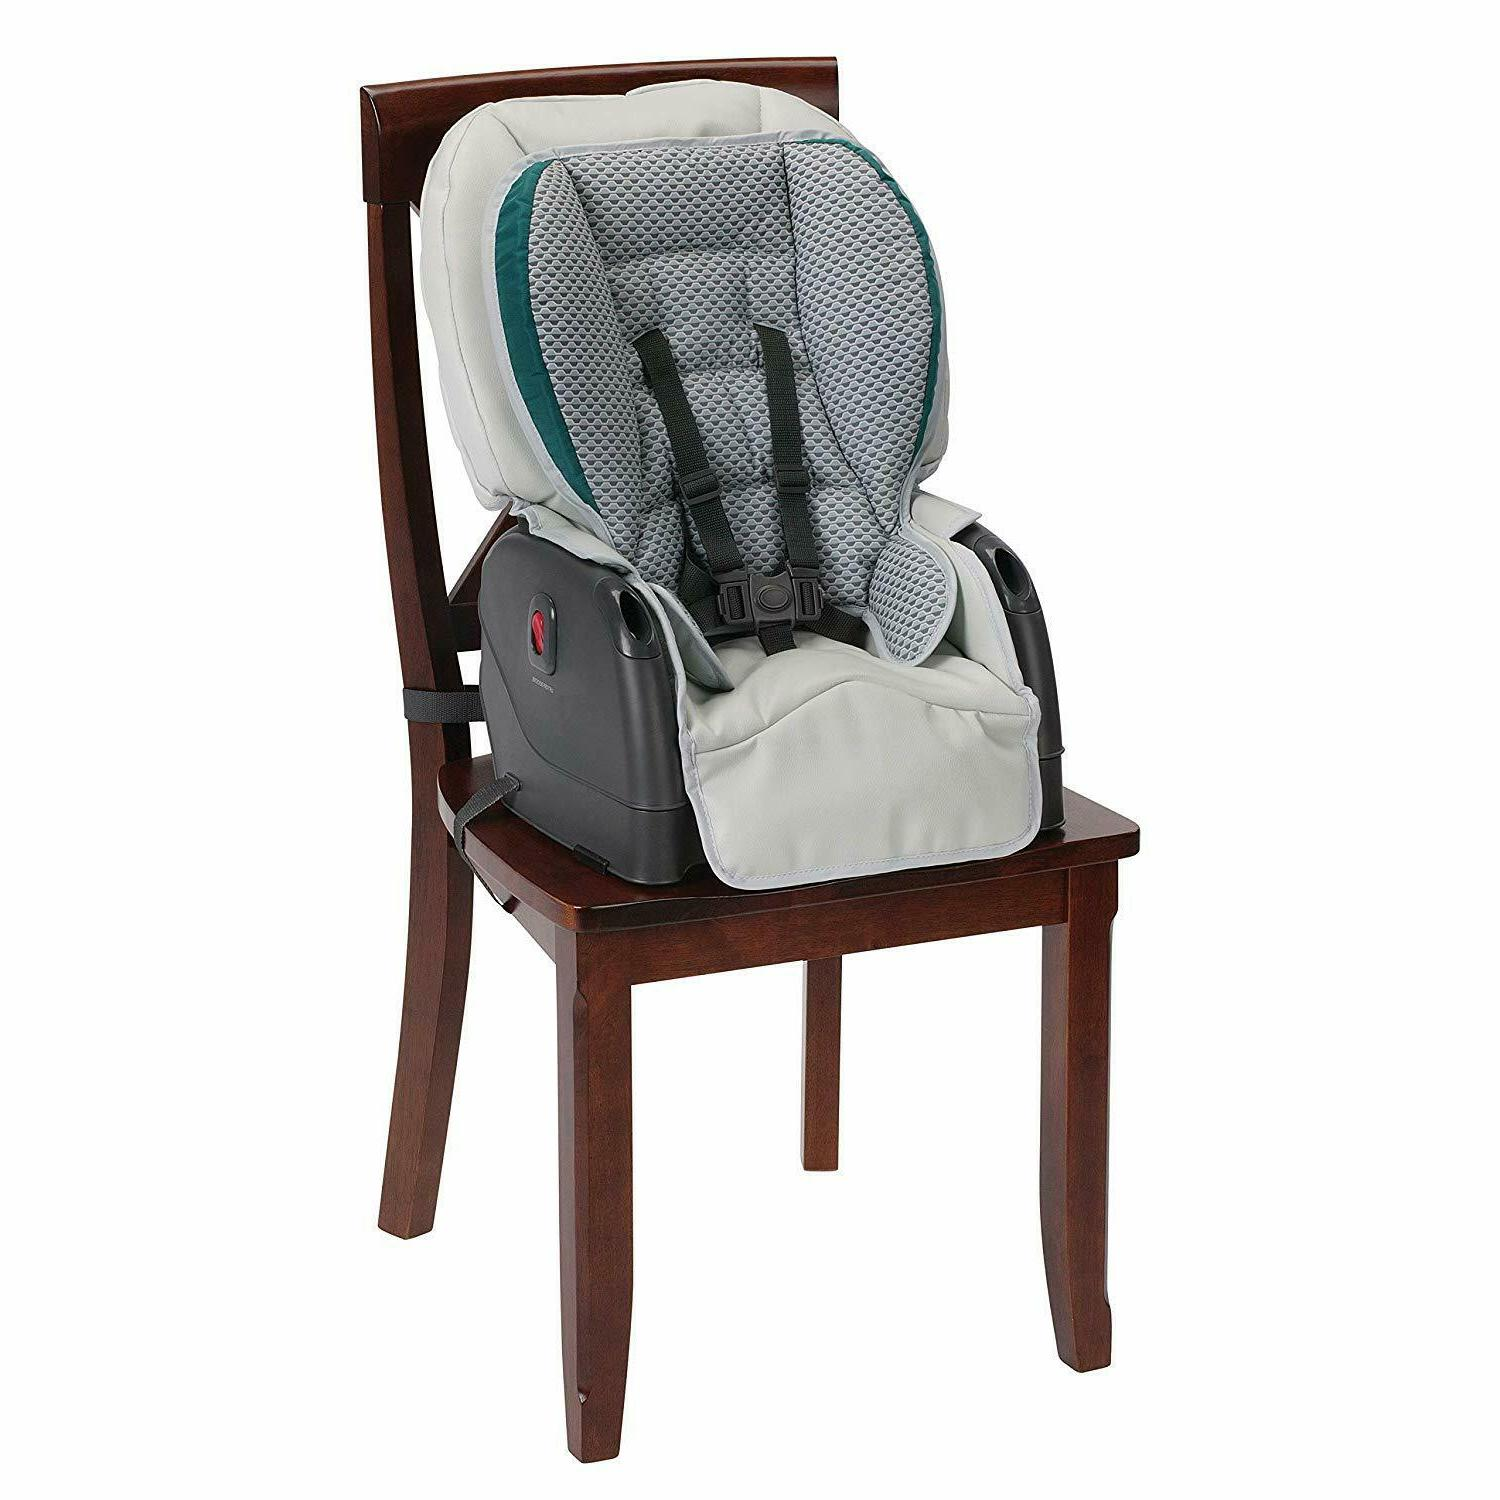 Graco Blossom 6-in-1 Kids Sapphire NEW